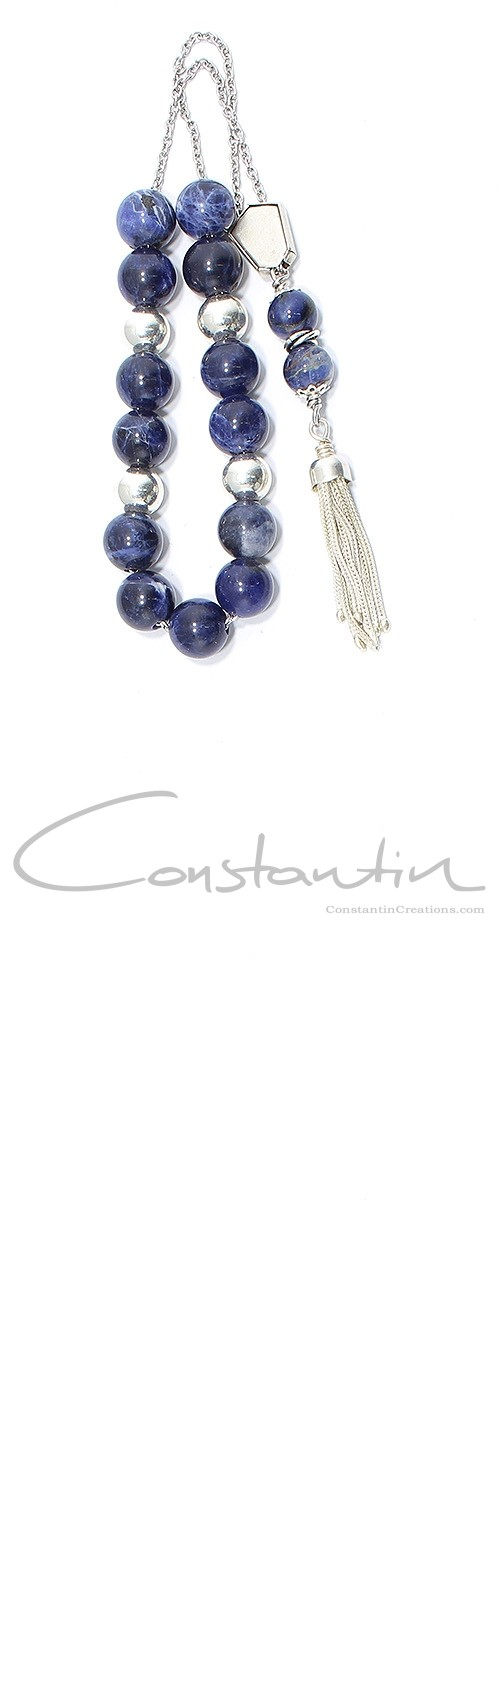 Dark blue mineral Sodalite, Greek komboloi with silver parts &  beads.